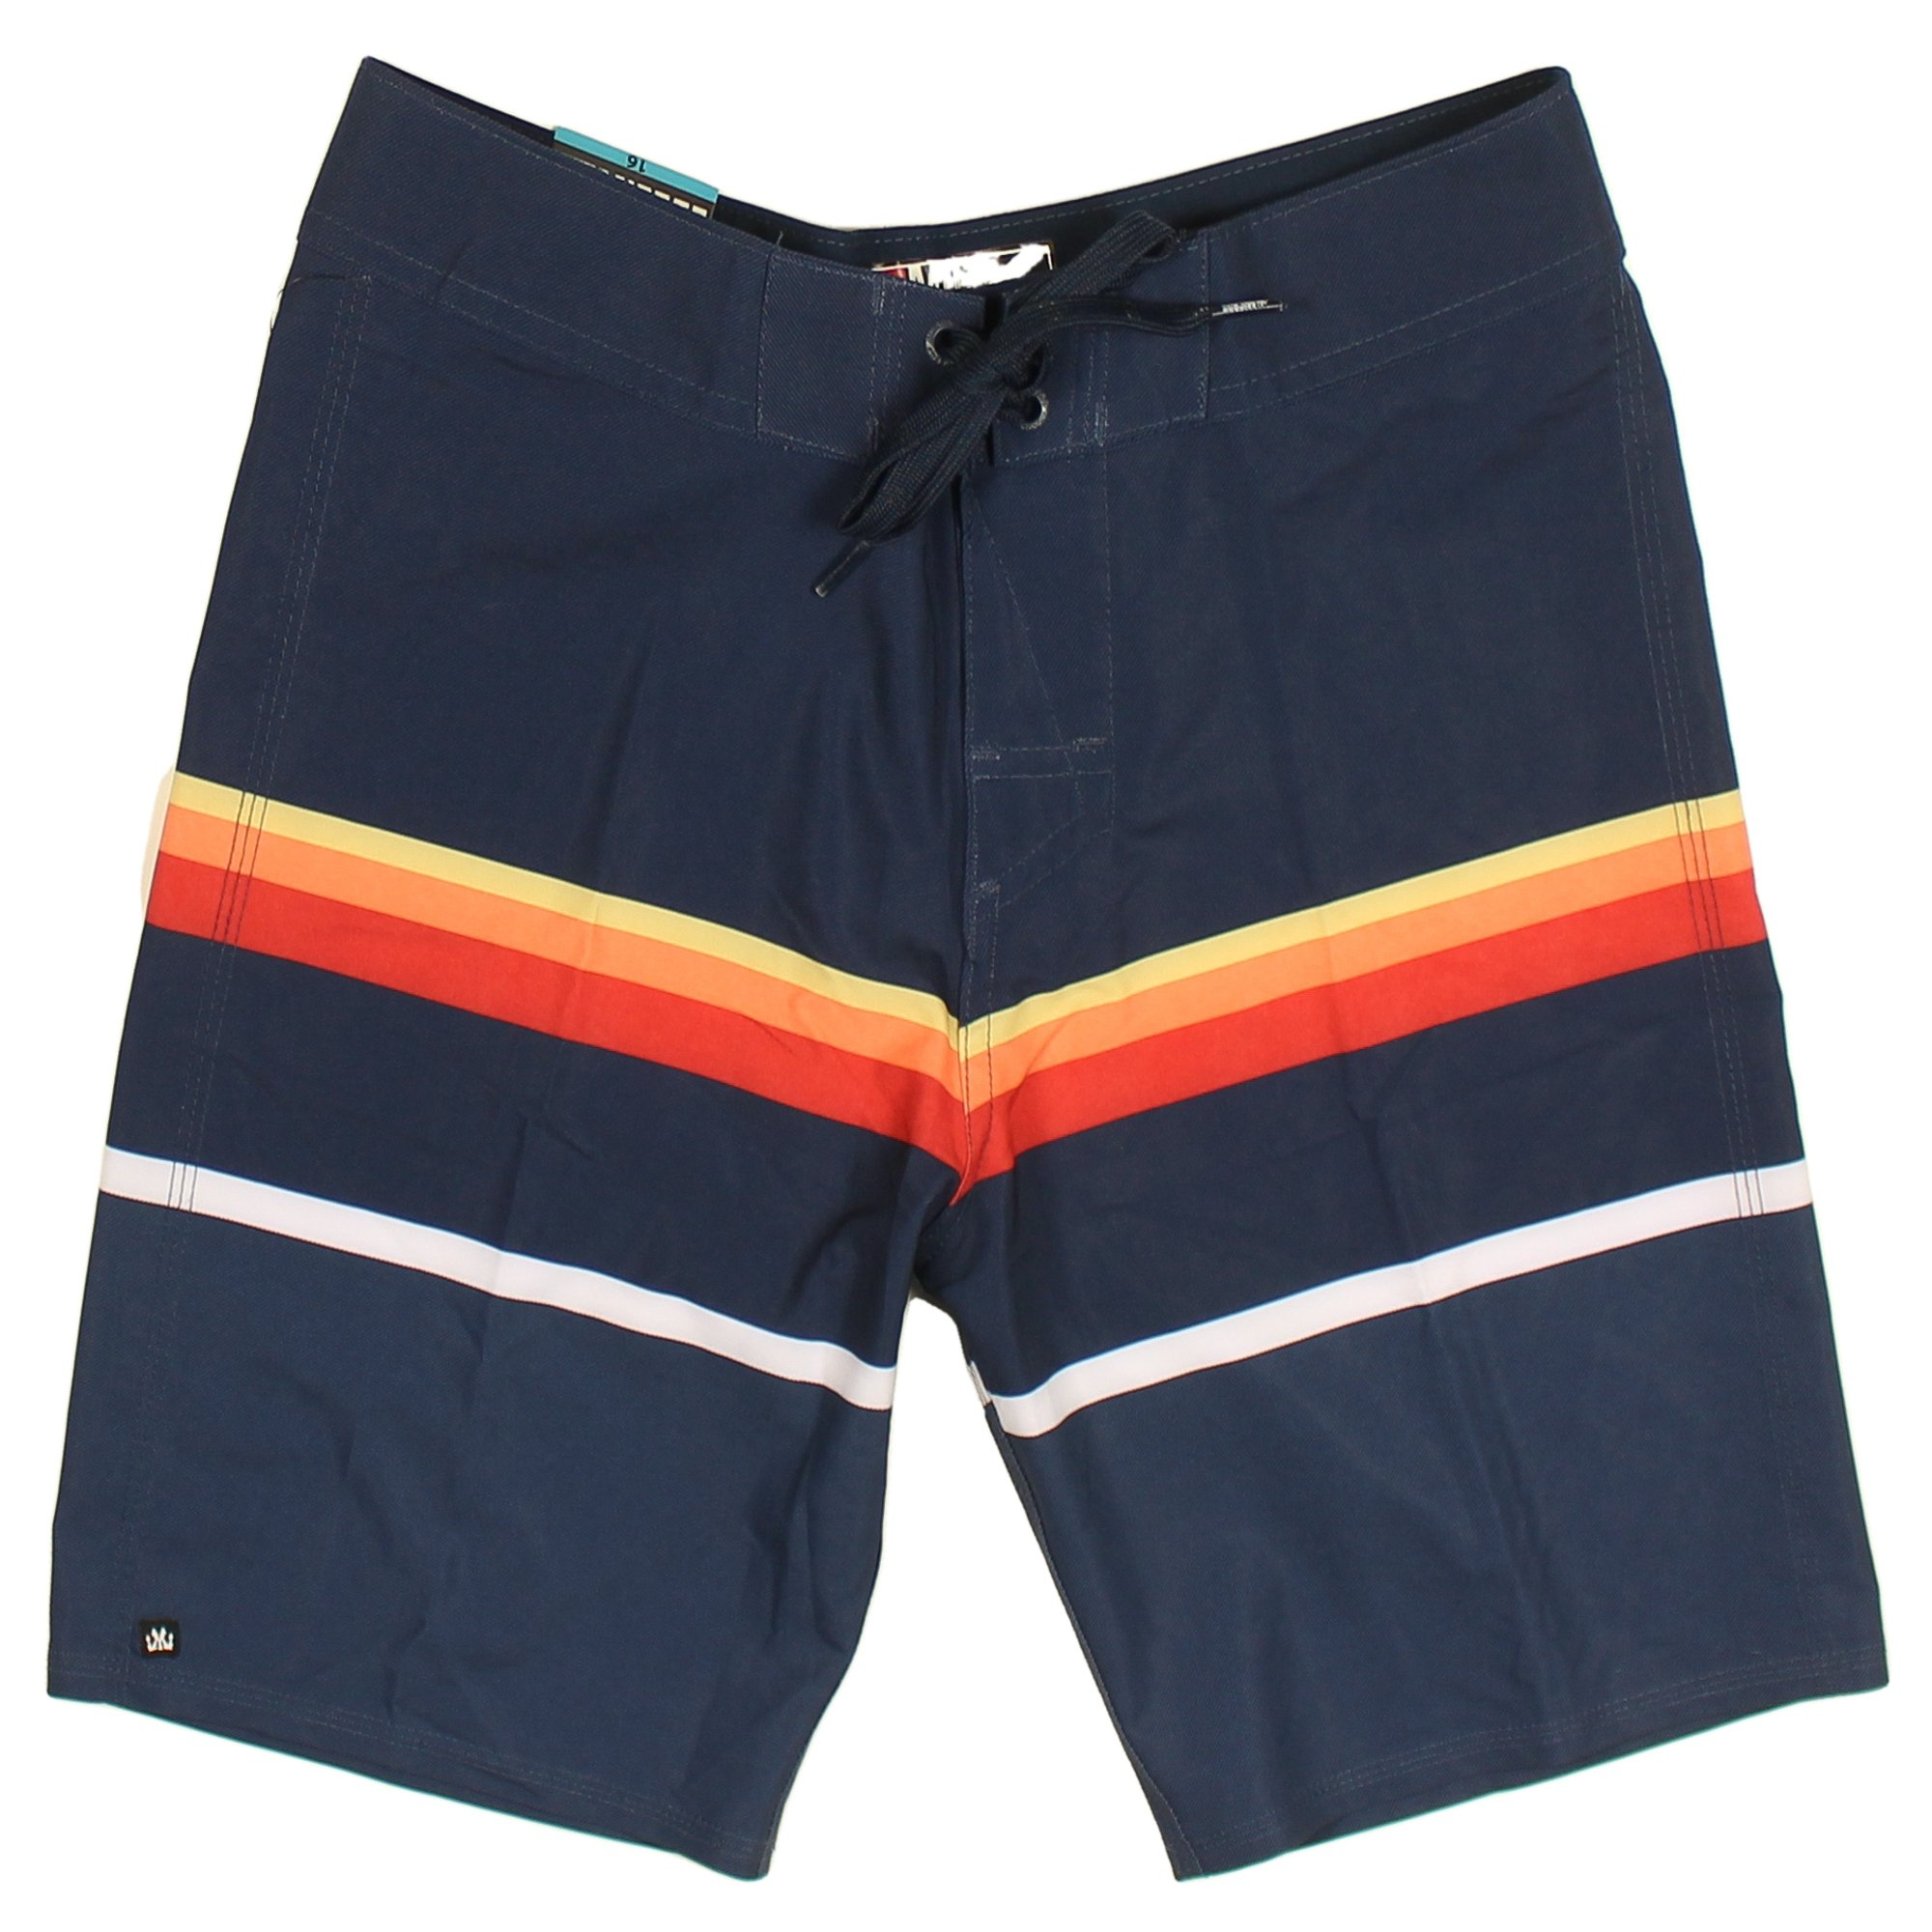 Micros Boy's Microfiber Boardshorts (16, Blue/Striped) by Micros (Image #1)